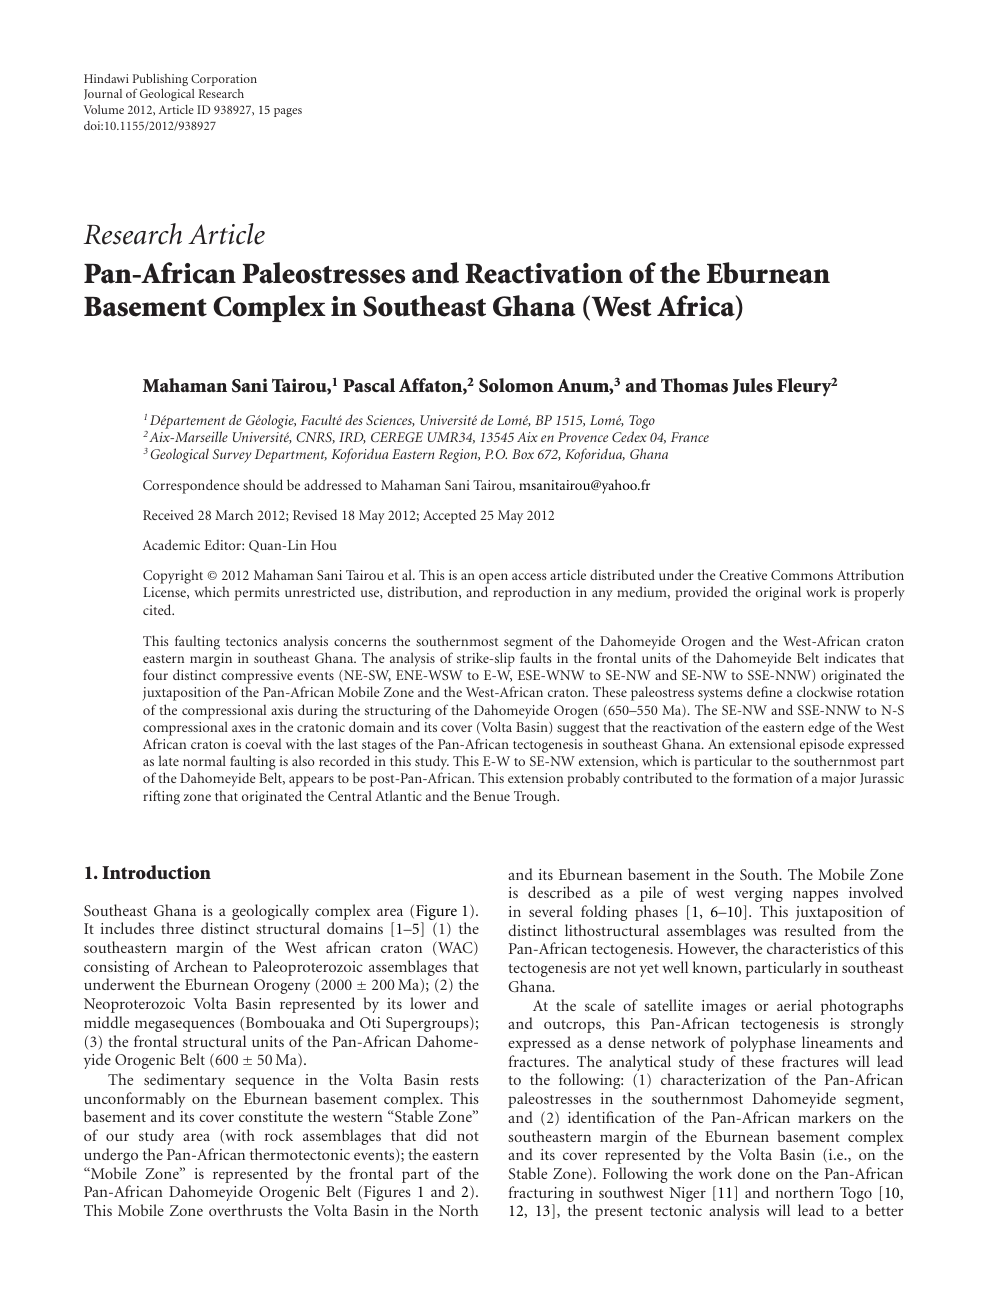 Pan African Paleostresses And Reactivation Of The Eburnean